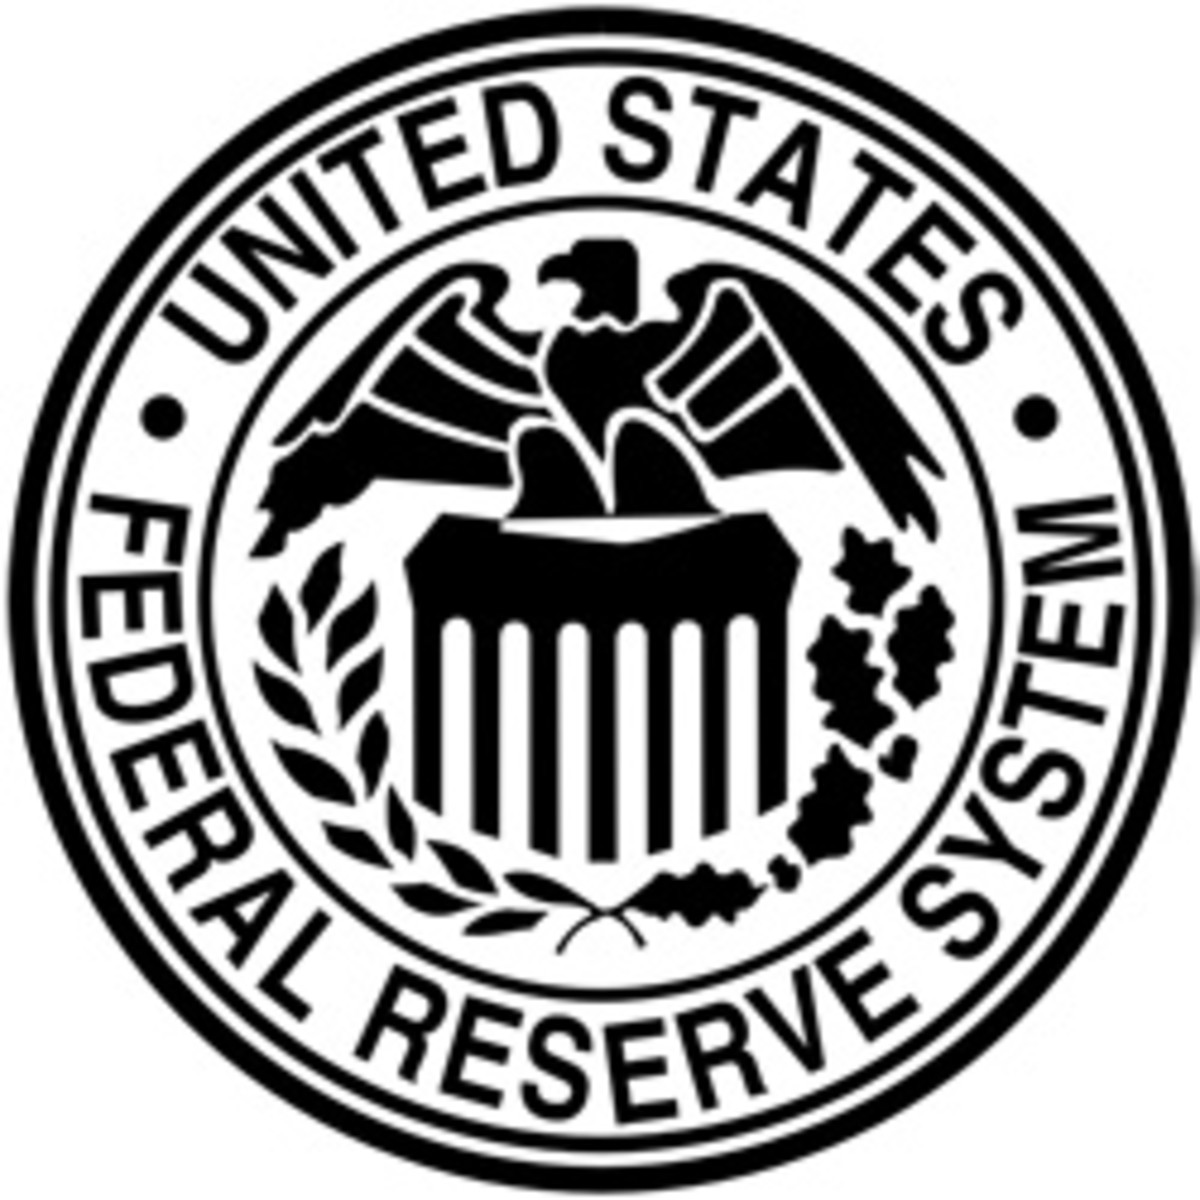 Seal of the United States Federal Reserve System.